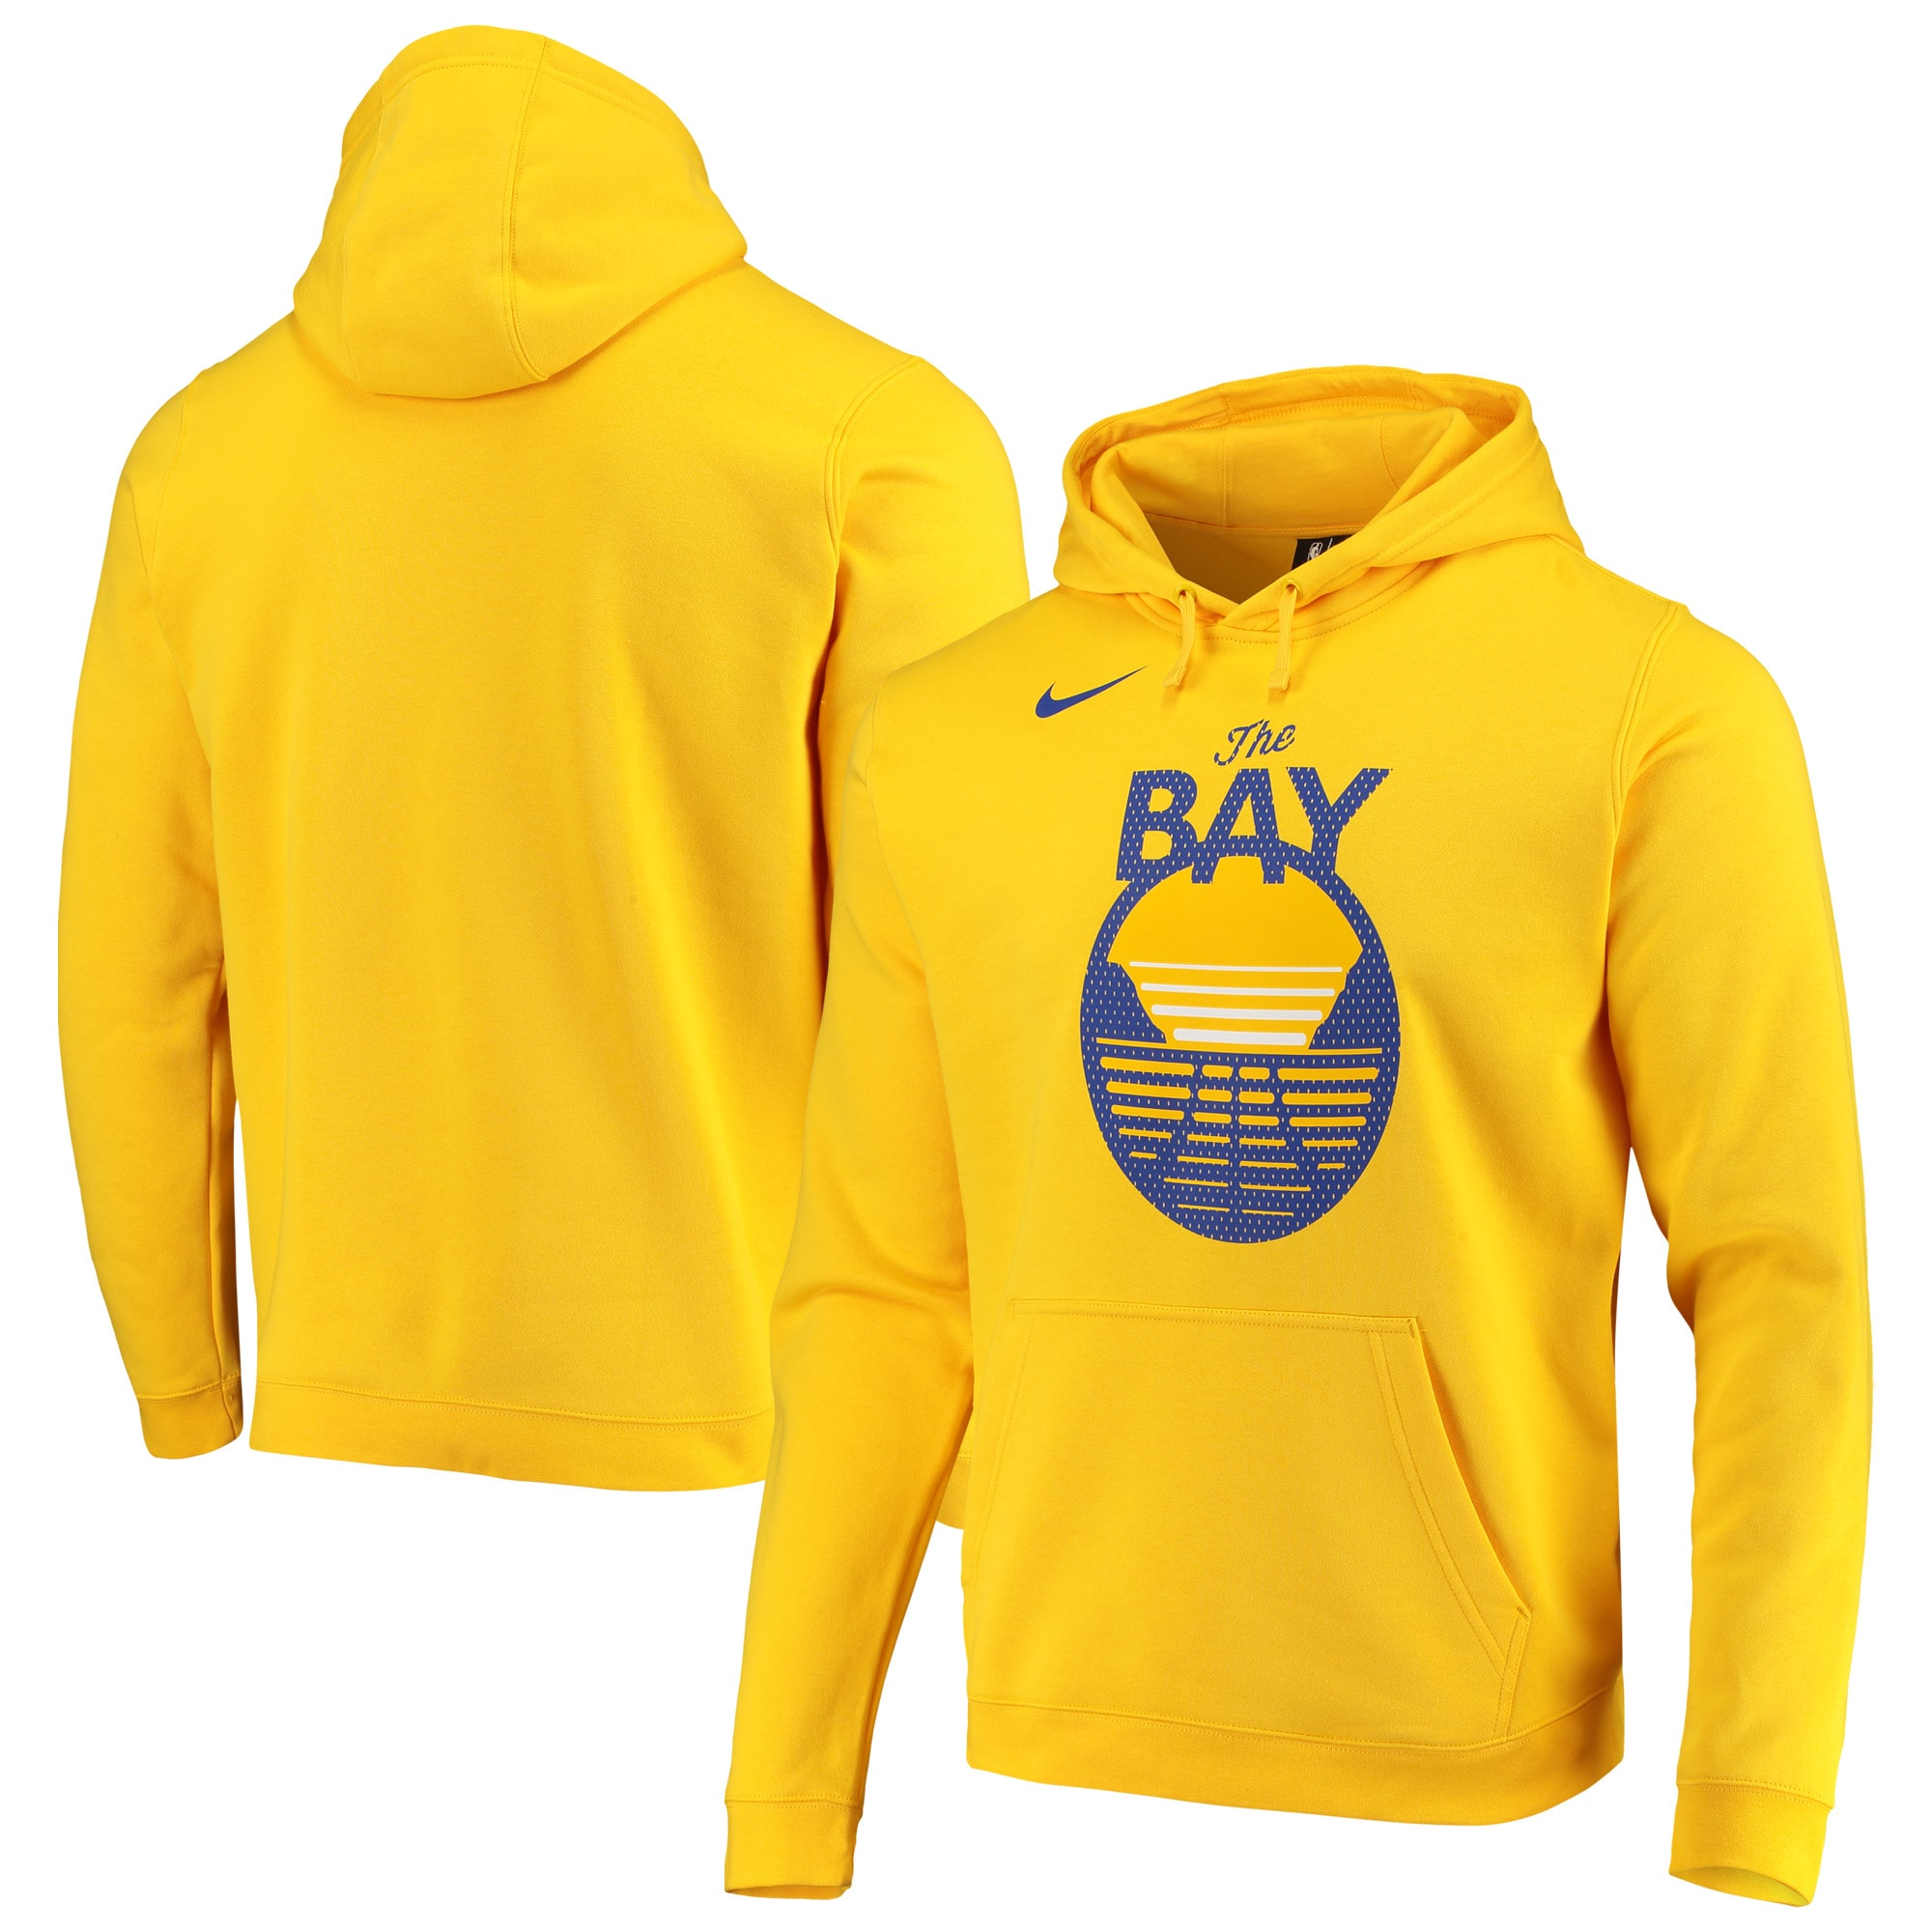 Golden State Warriors Nike 2019/20 Statement Edition Club Pullover Hoodie - Gold